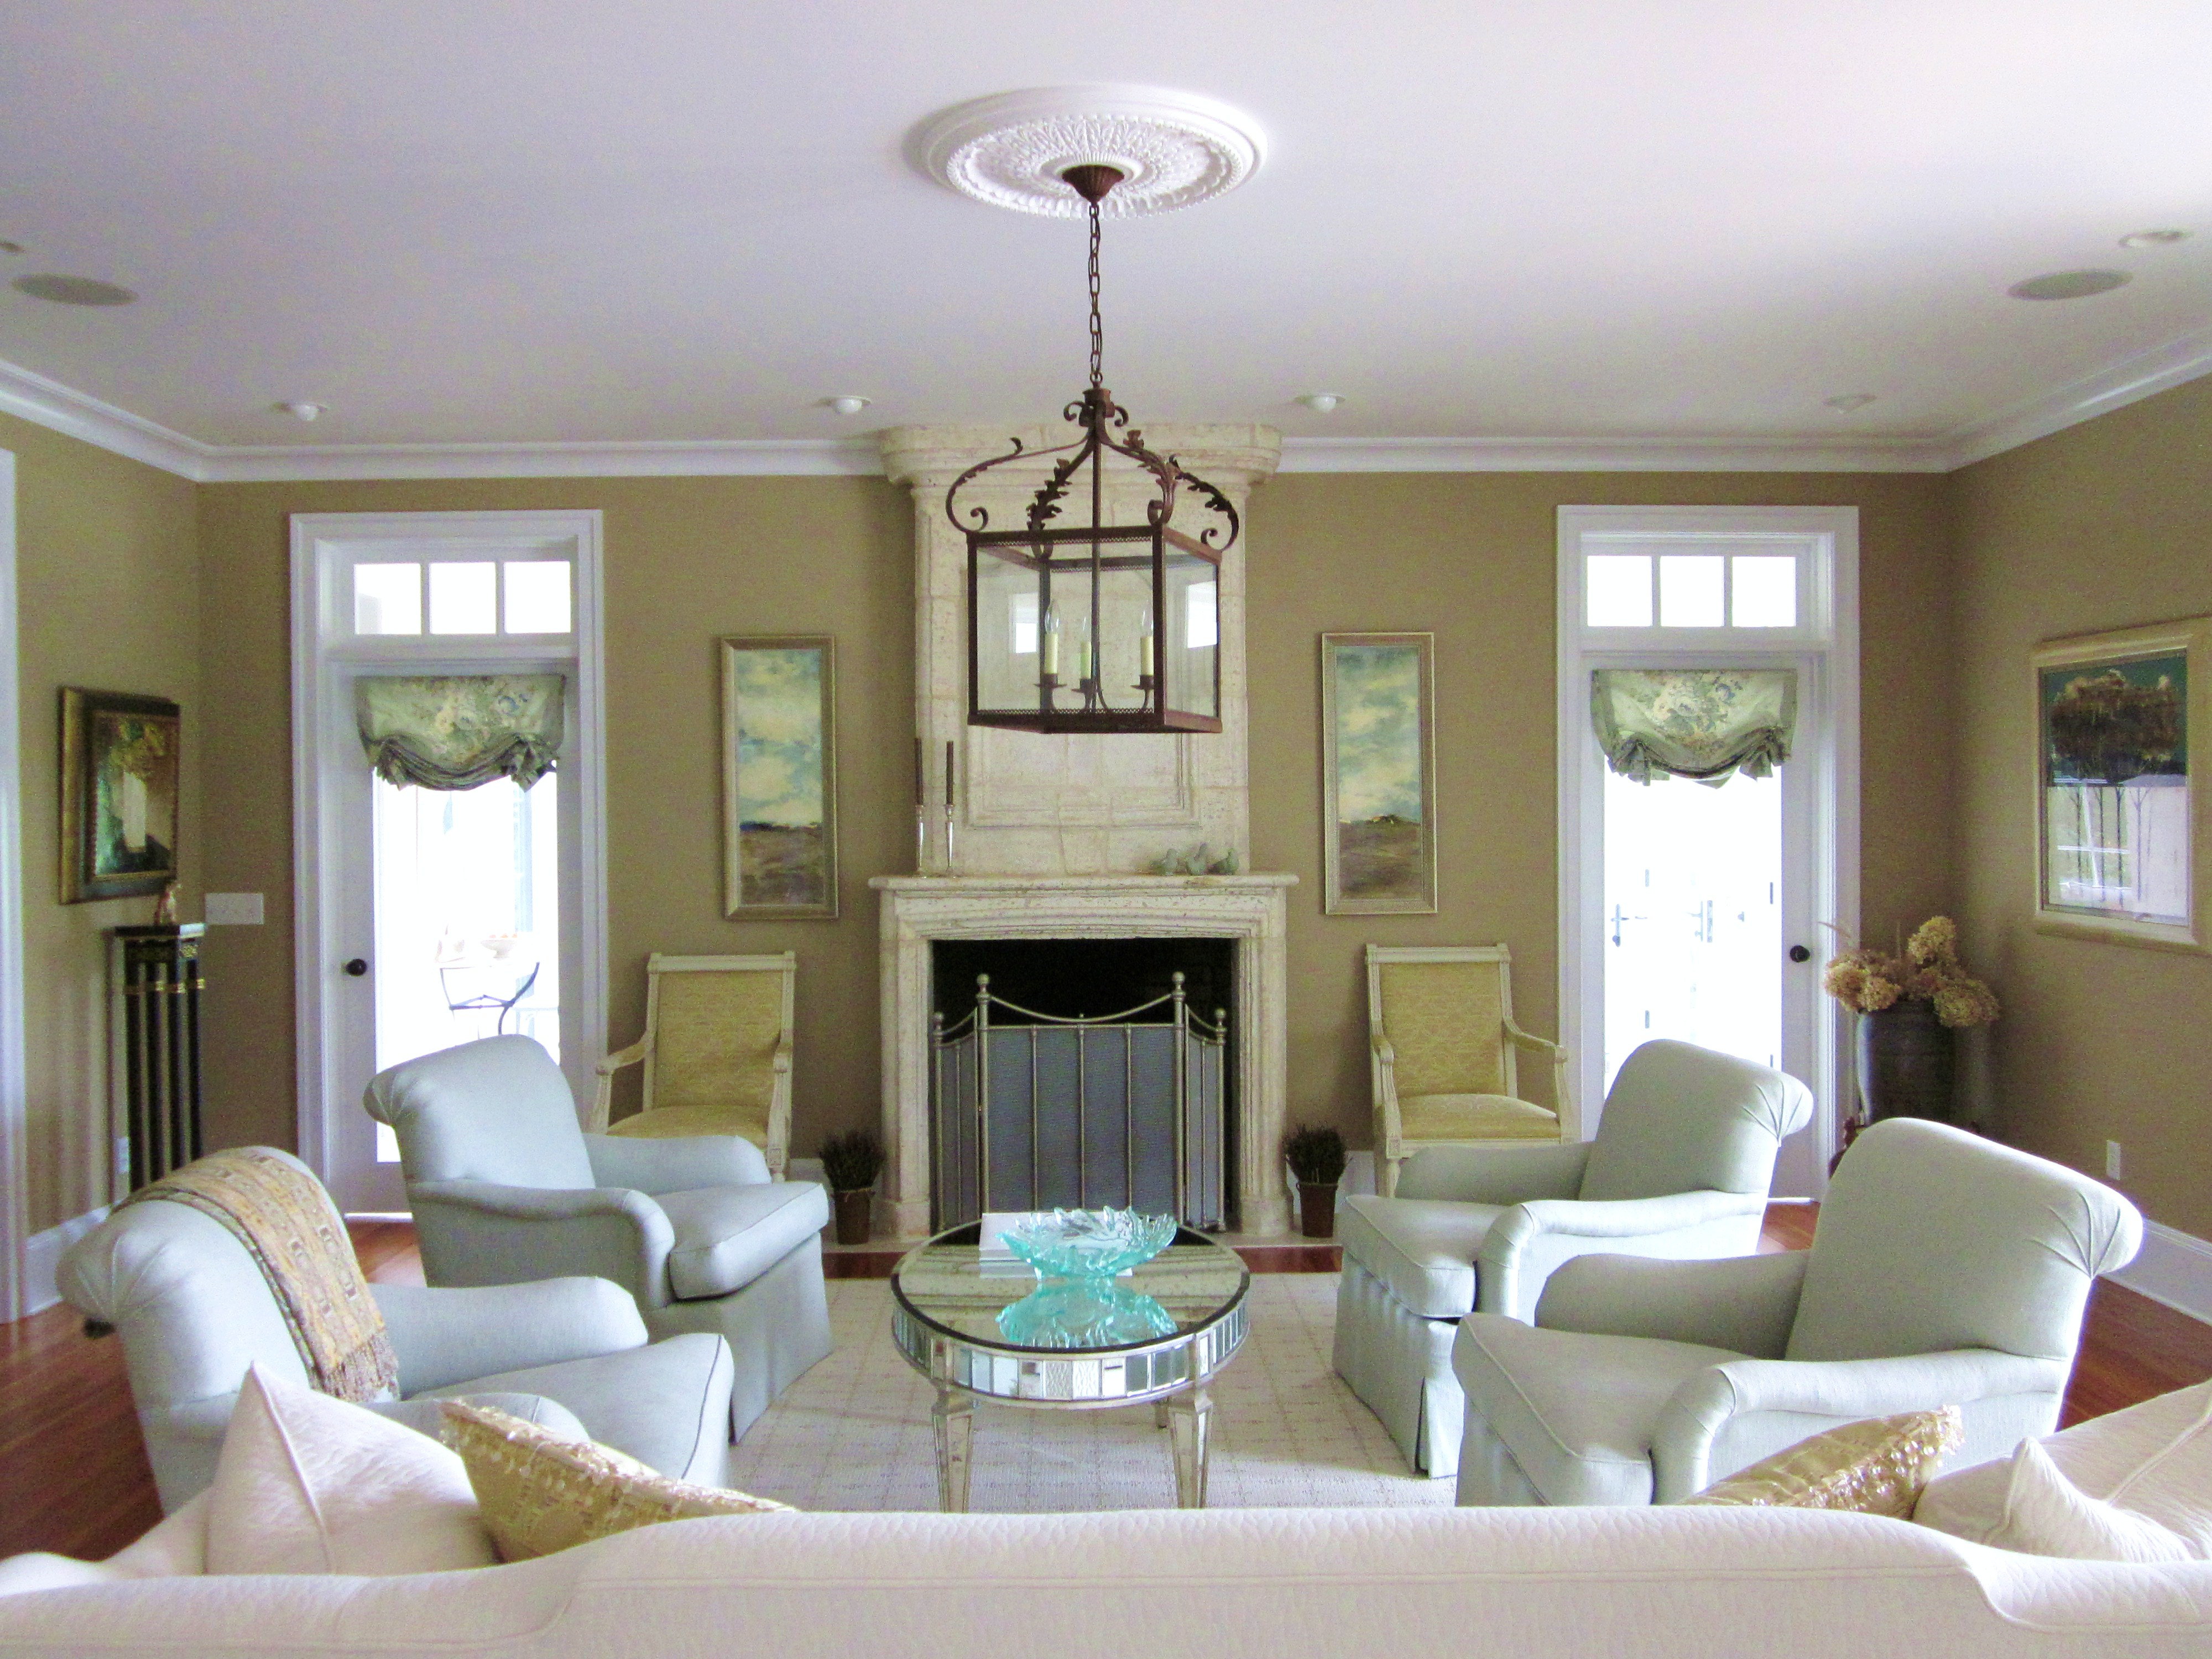 Interior Design Washington Dc By Lawson Interiors Area Consultant Corporate